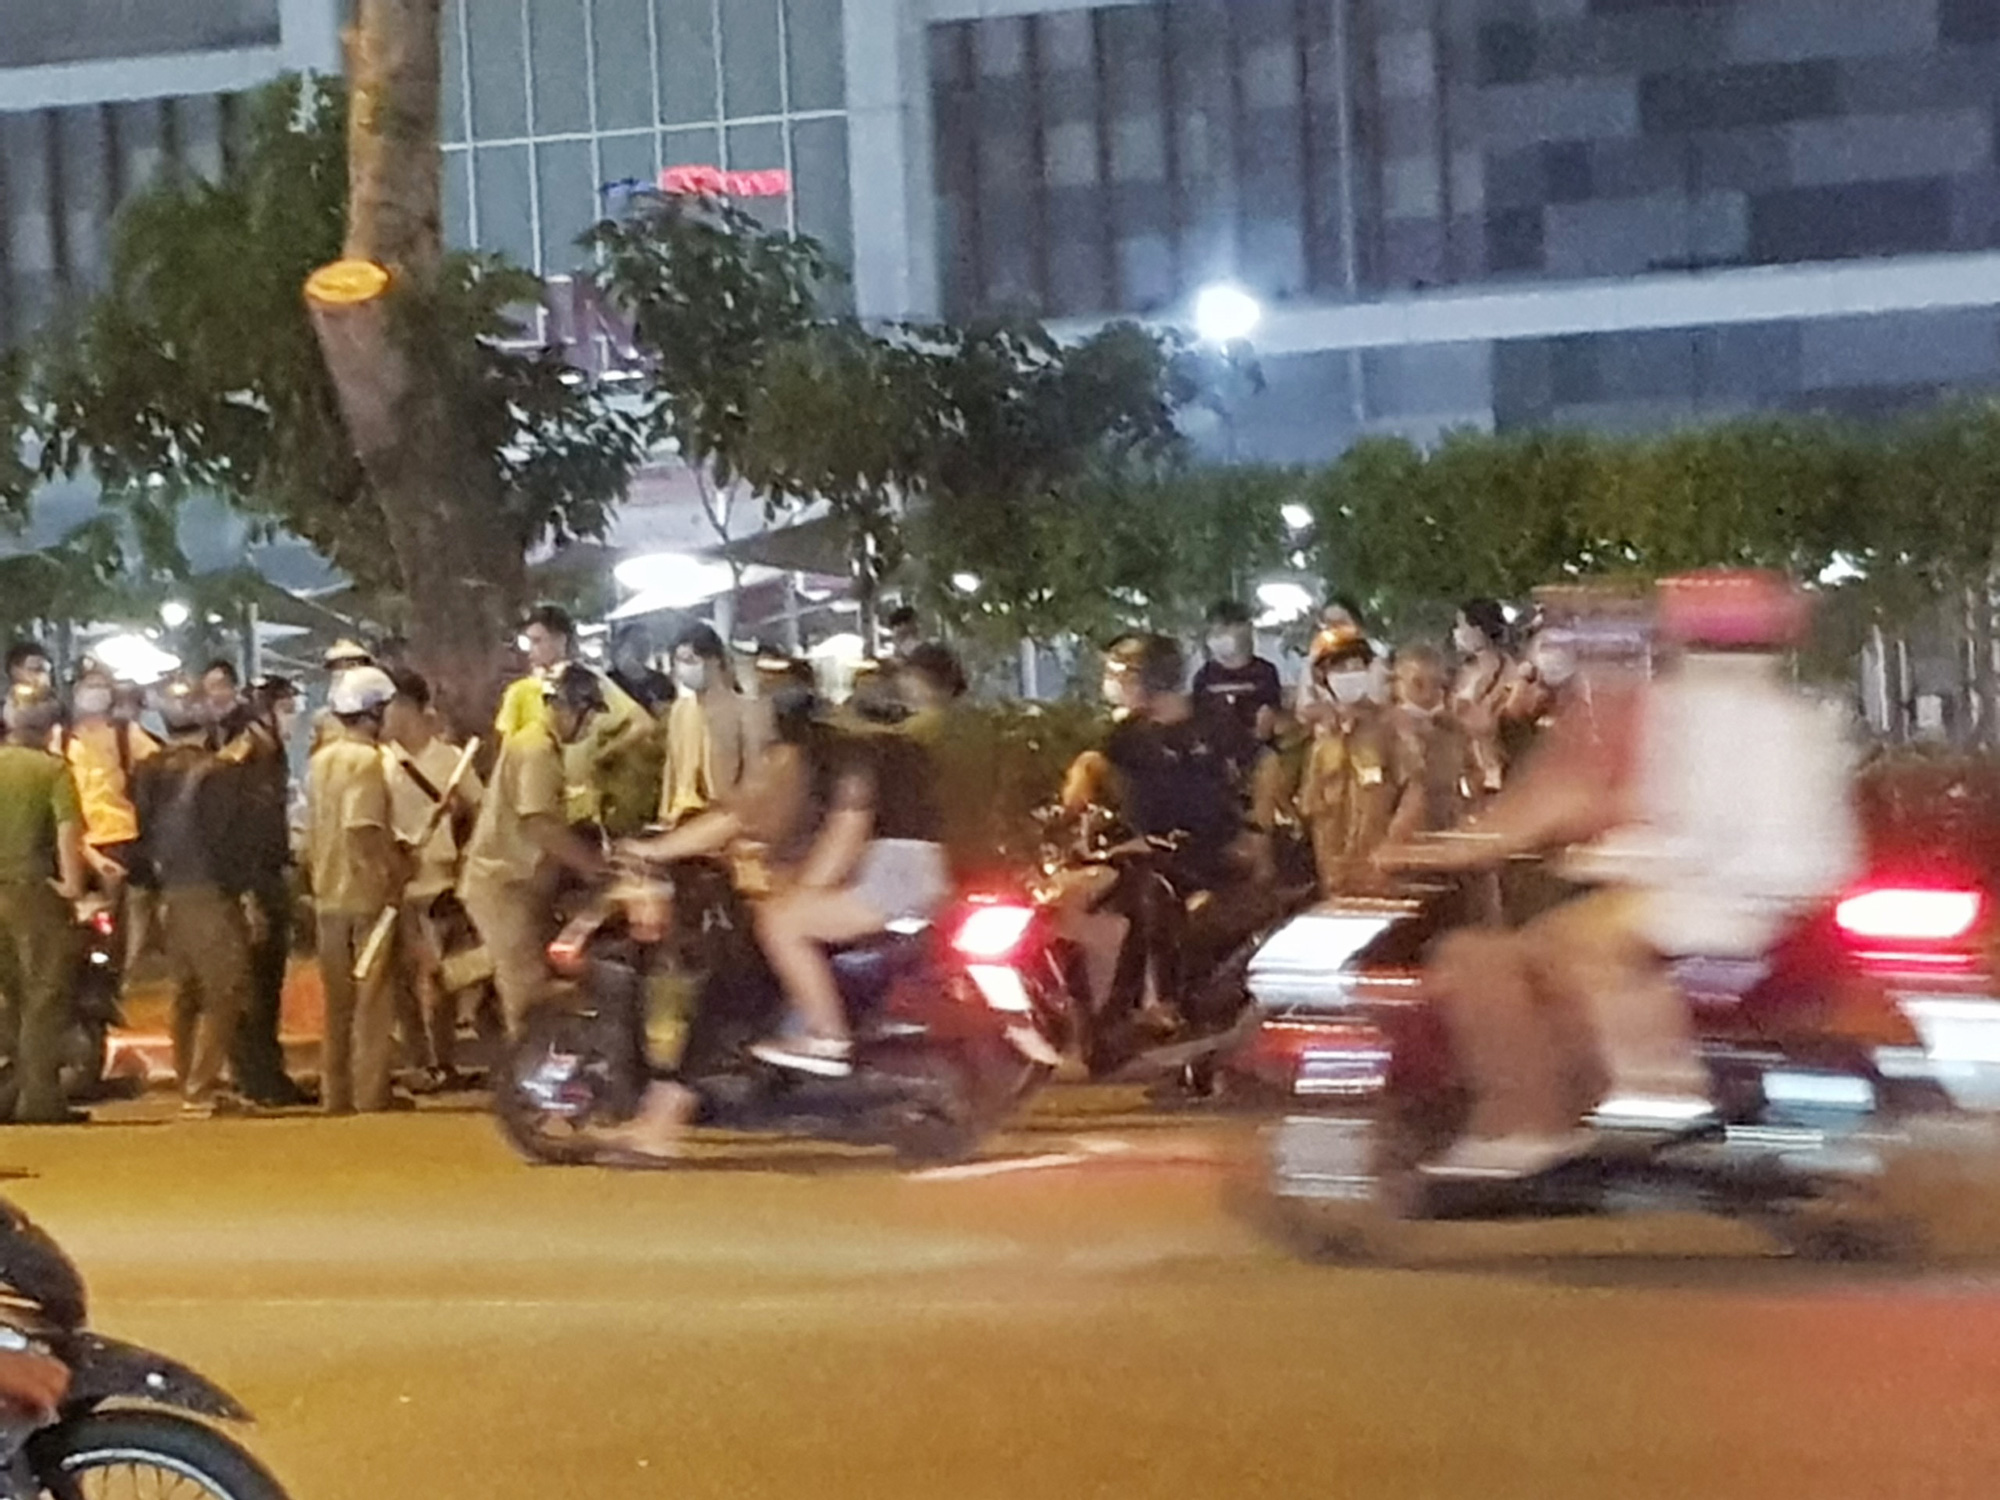 Police officers arrive at AEON MALL Tan Phu Celadon in Tan Phu District, Ho Chi Minh City following a quarrel on December 6, 2020. Photo: Ngoc Khai / Tuoi Tre